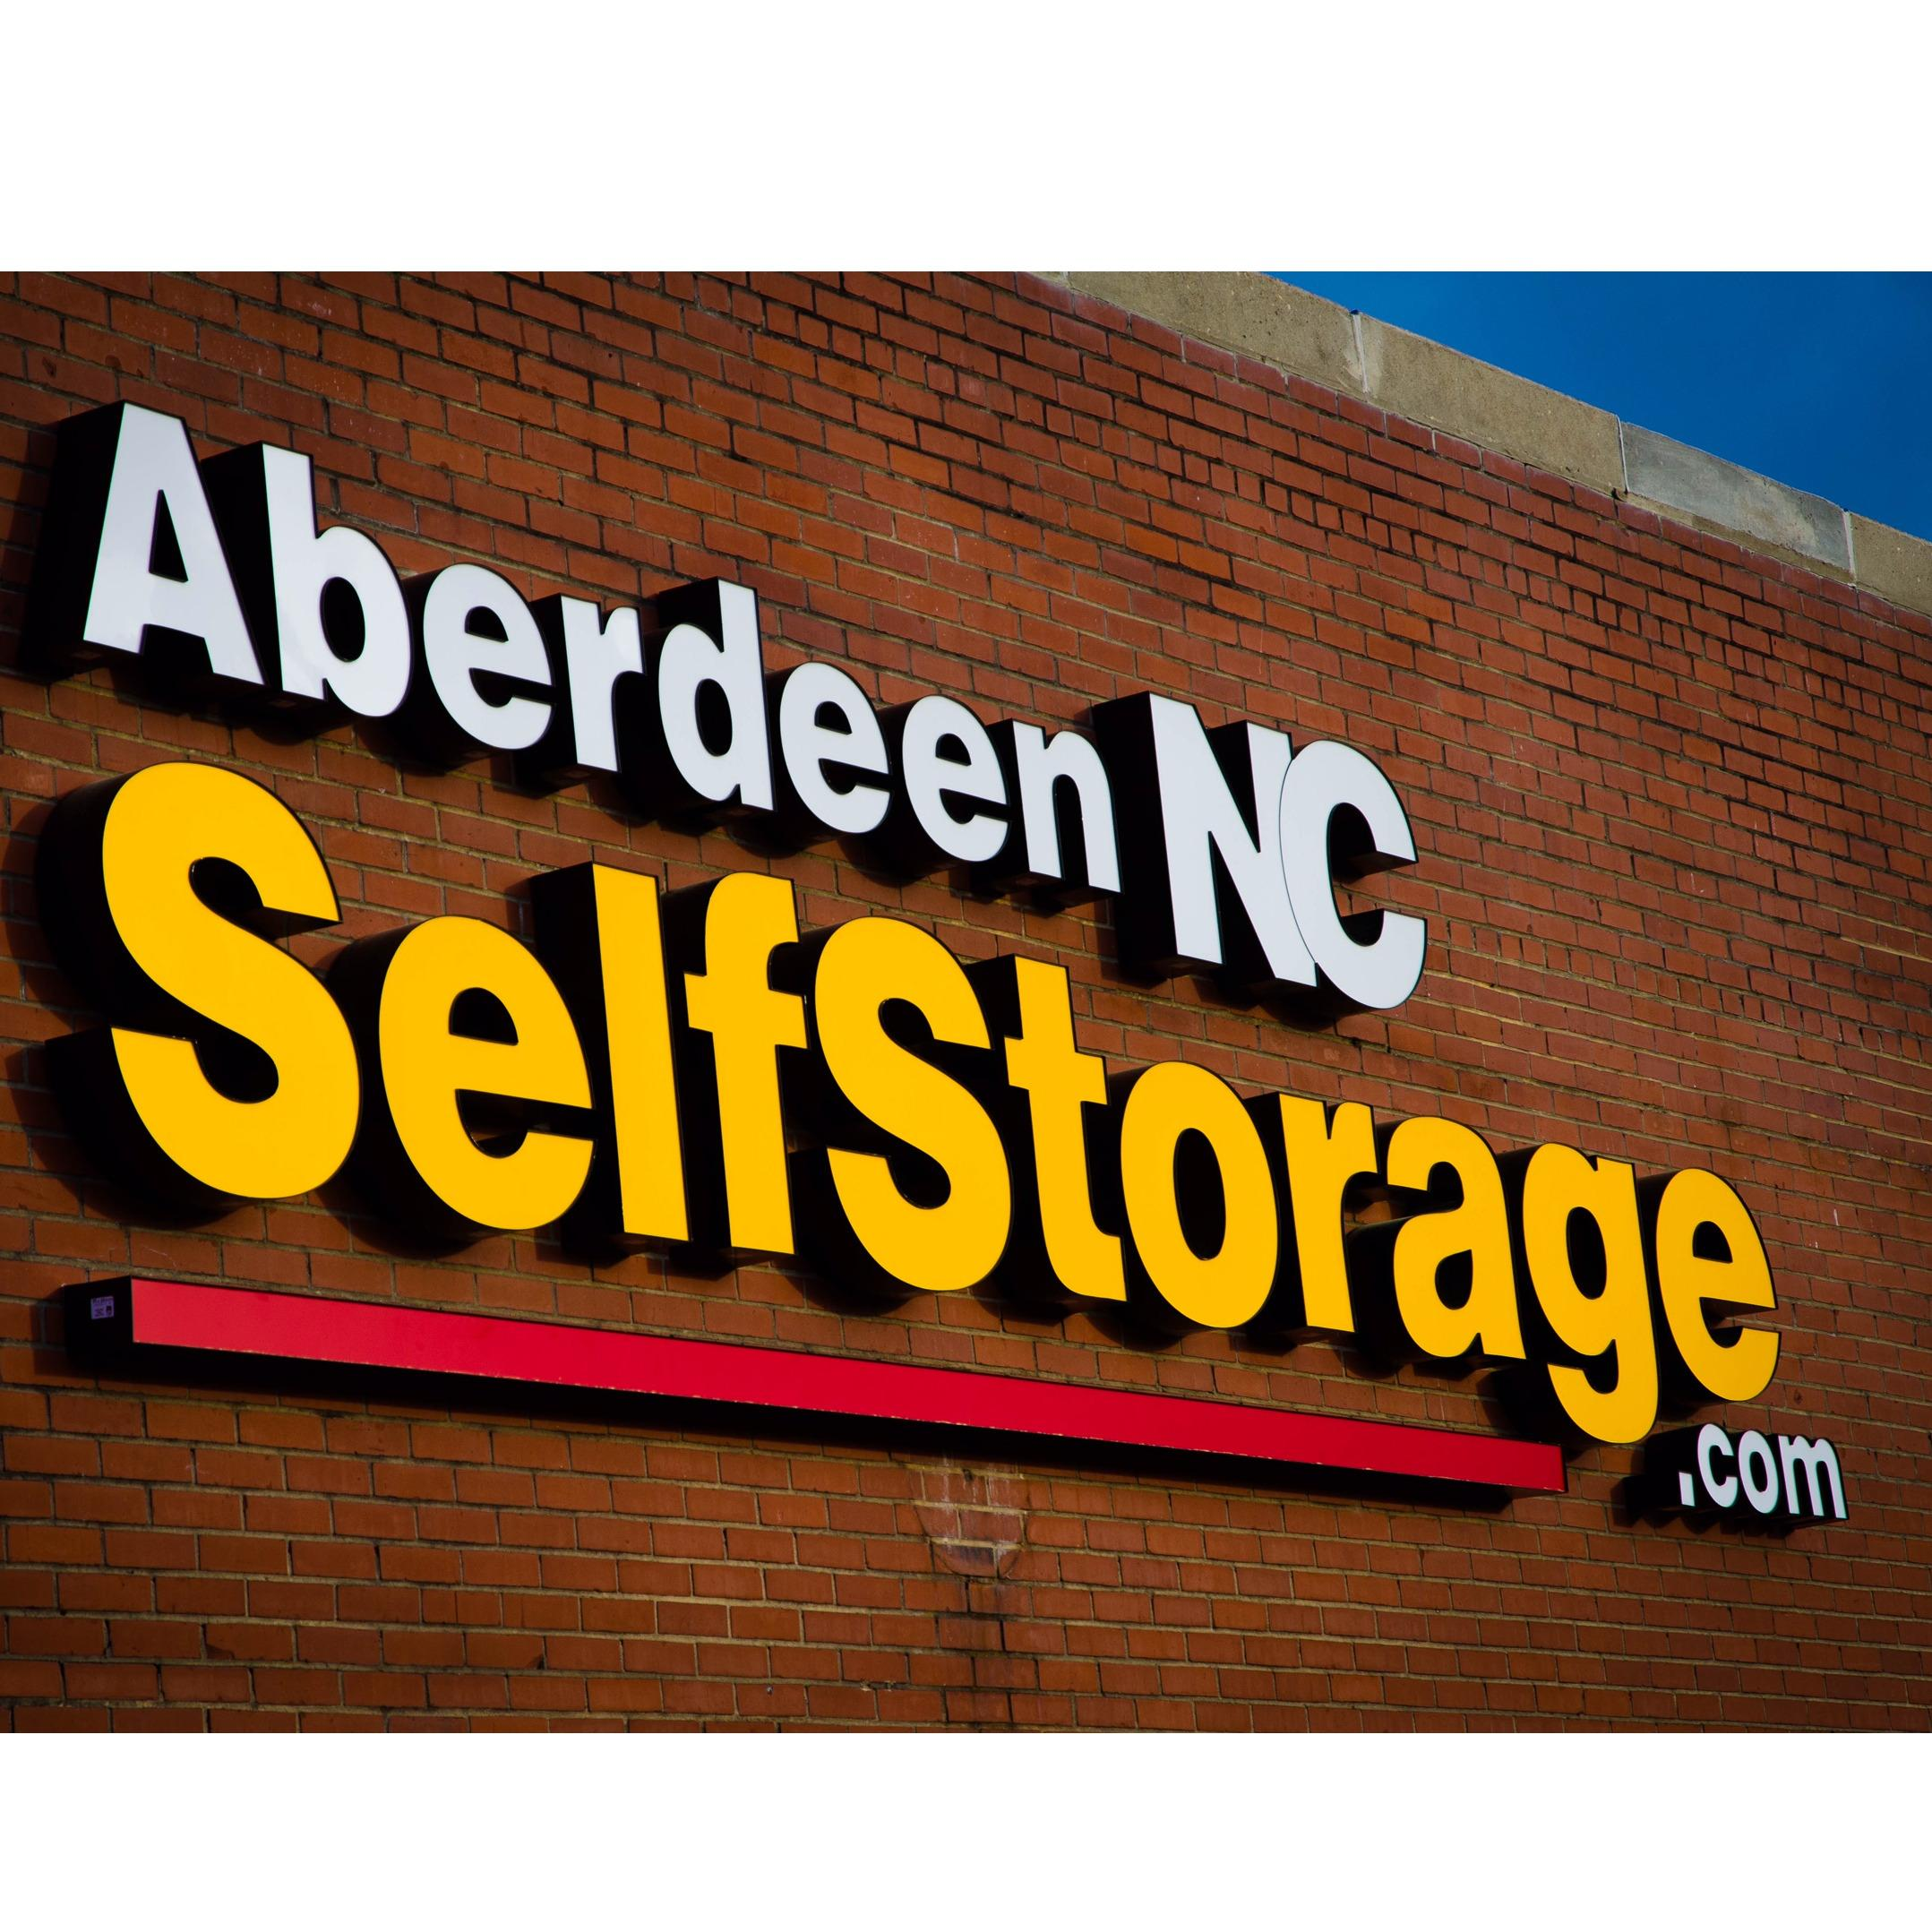 Aberdeen NC Self Storage, LLC